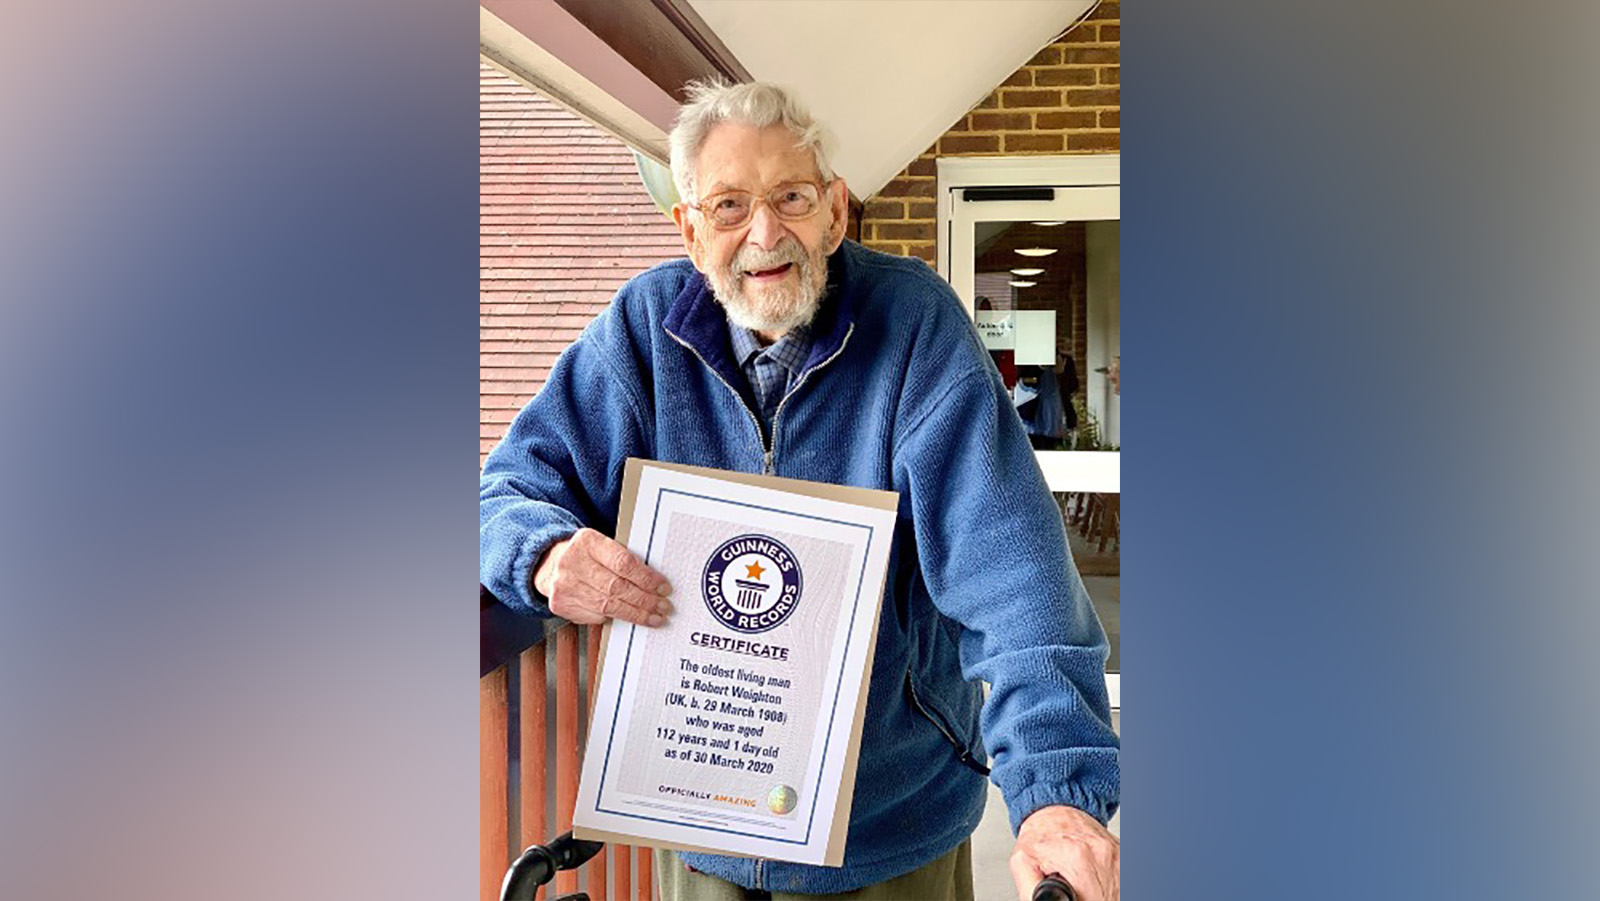 Picture of man with beard holding certificate